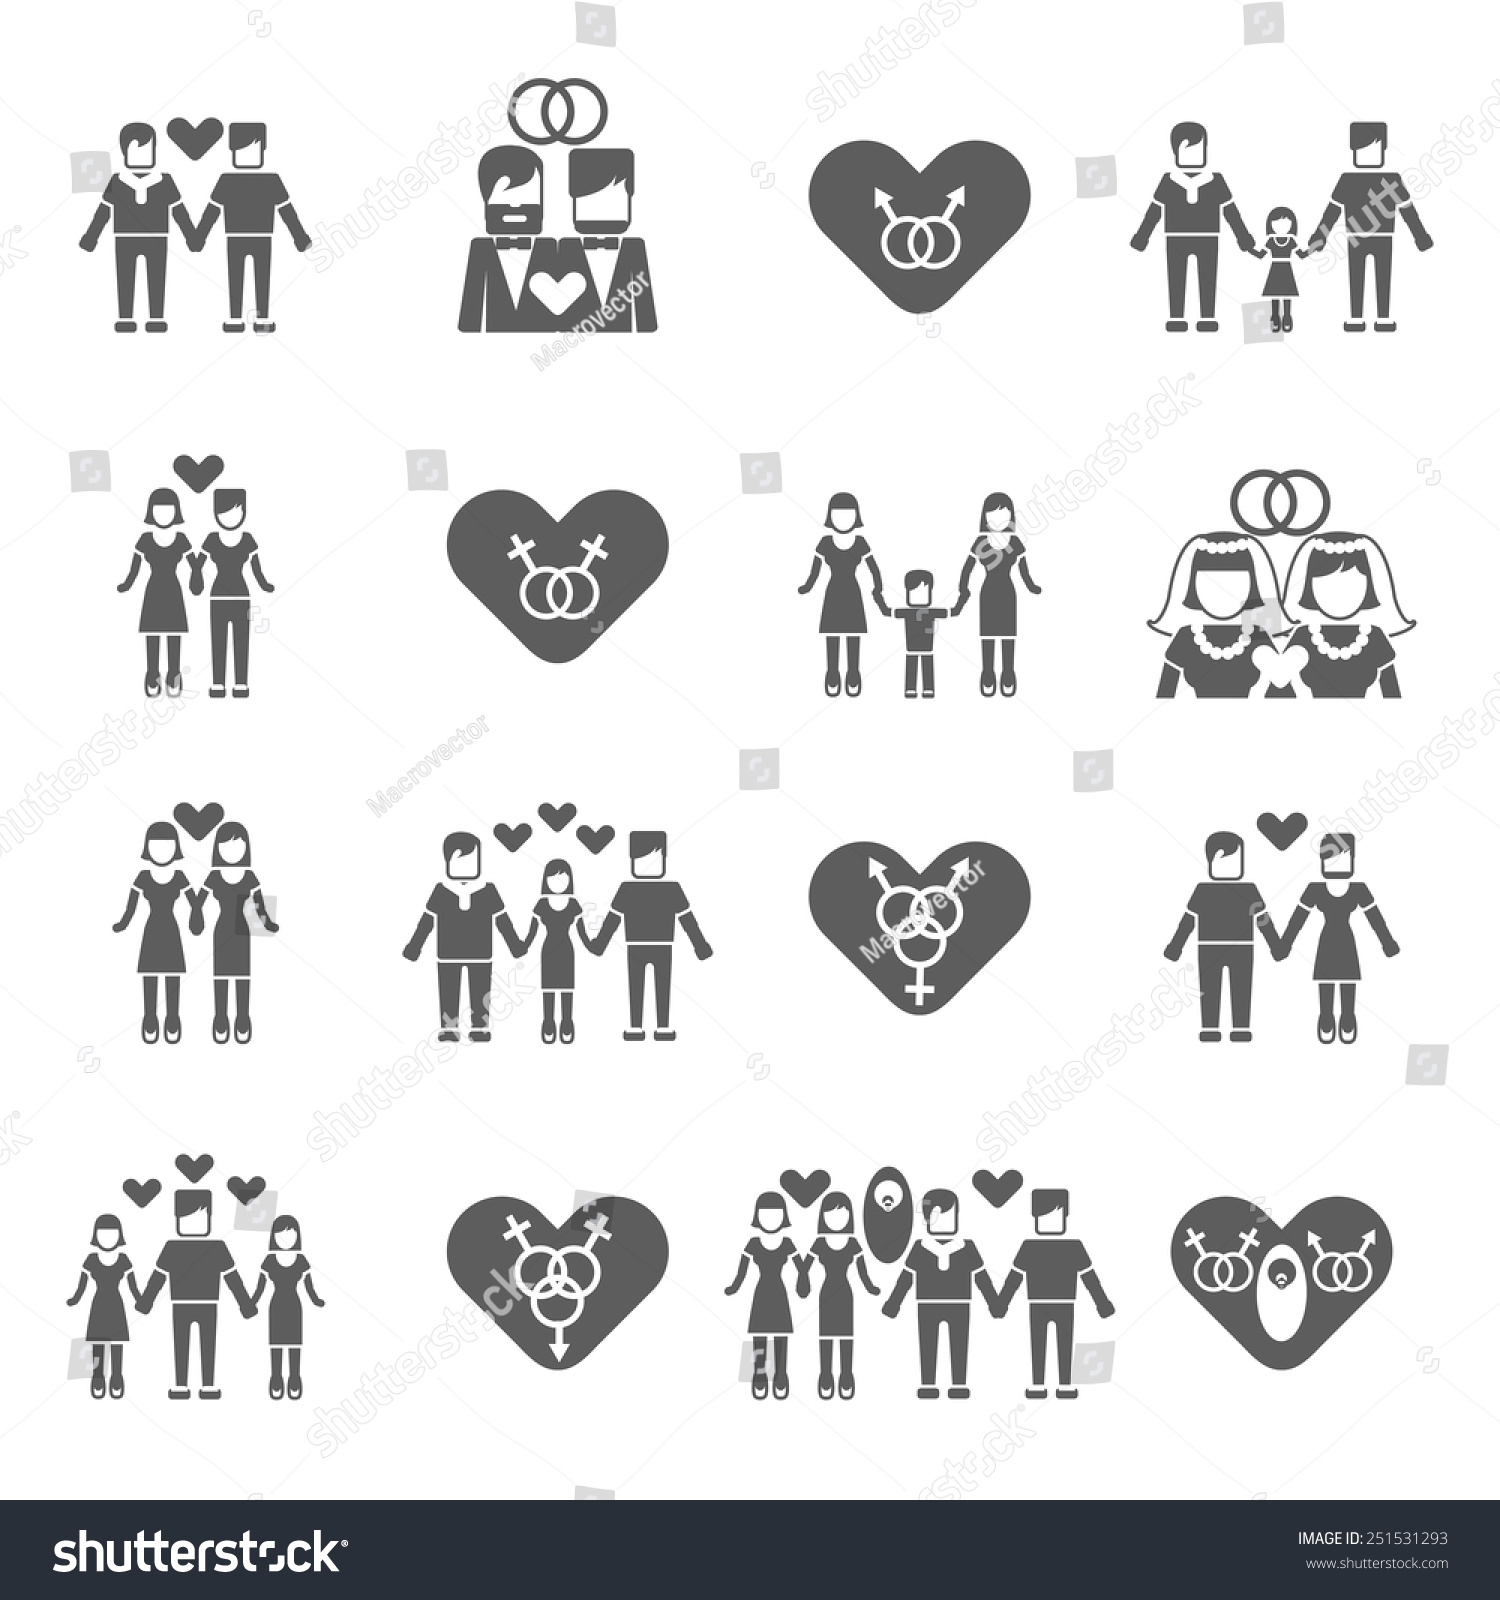 Nontraditional family open orientation lesbian mothers stock nontraditional family open orientation lesbian mothers parenting male child poster with heart symbol abstract vector illustration buycottarizona Gallery